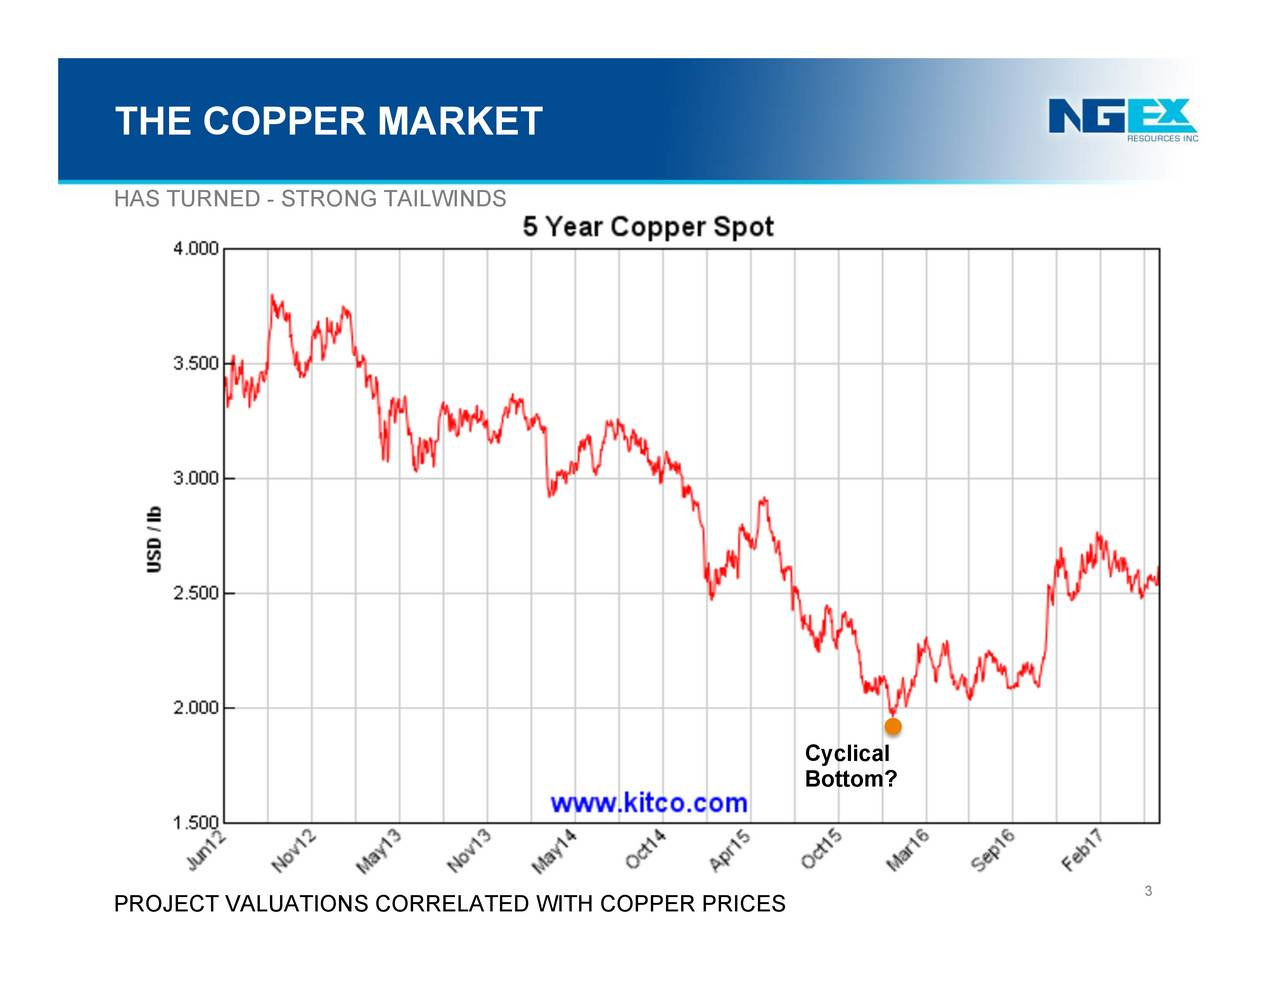 HAS TURNED - STRONG TAILWINDS Cyclical Bottom? 3 PROJECT VALUATIONS CORRELATED WITH COPPER PRICES